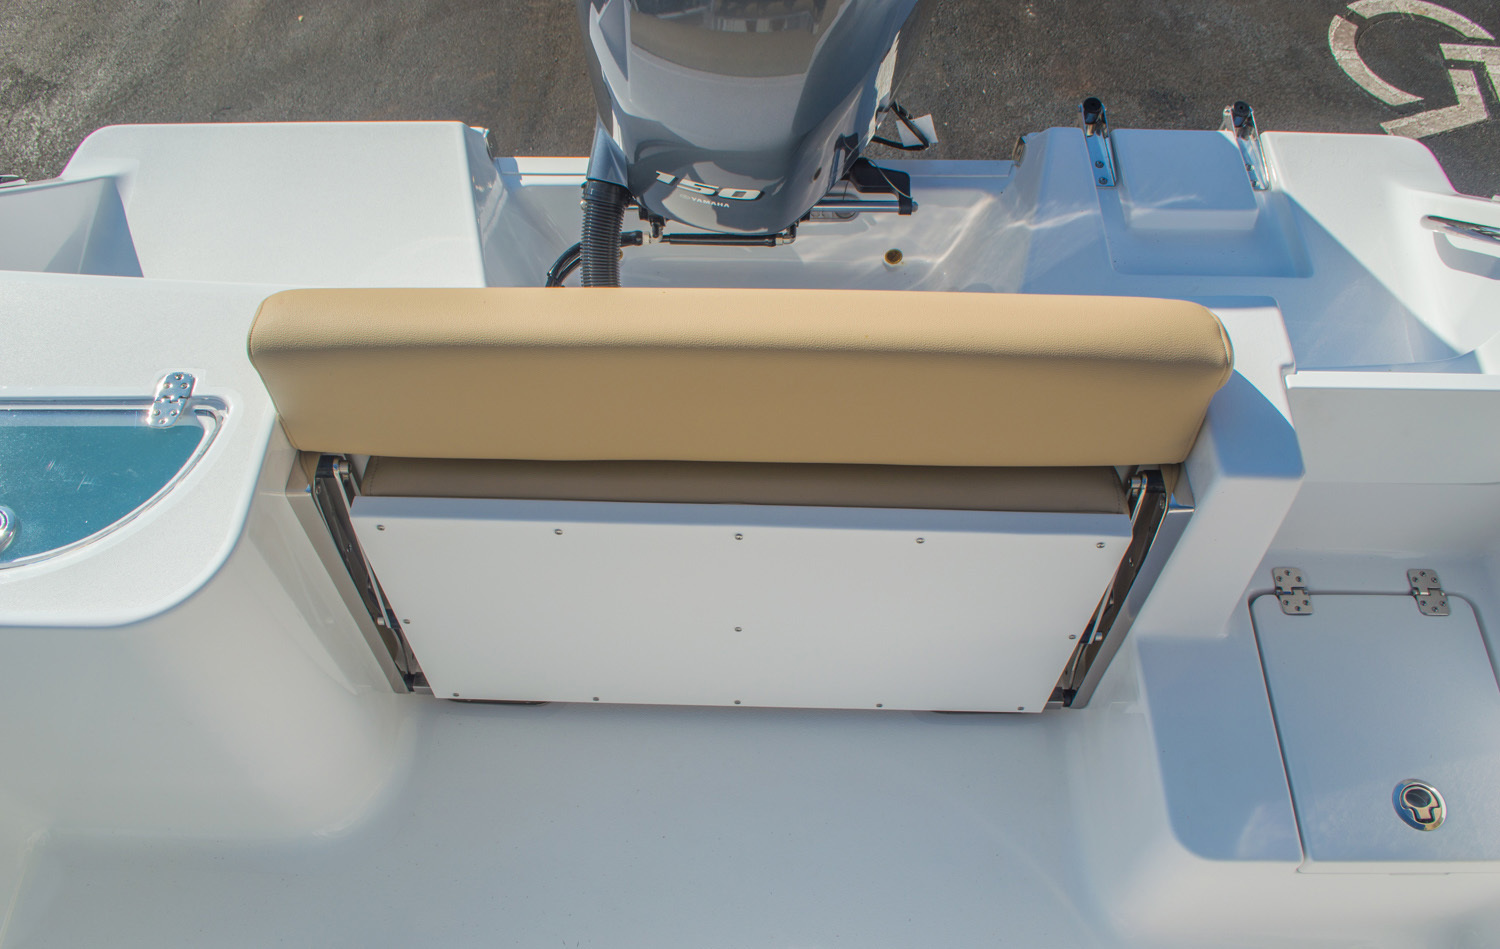 Thumbnail 22 for New 2016 Sportsman Open 212 Center Console boat for sale in West Palm Beach, FL